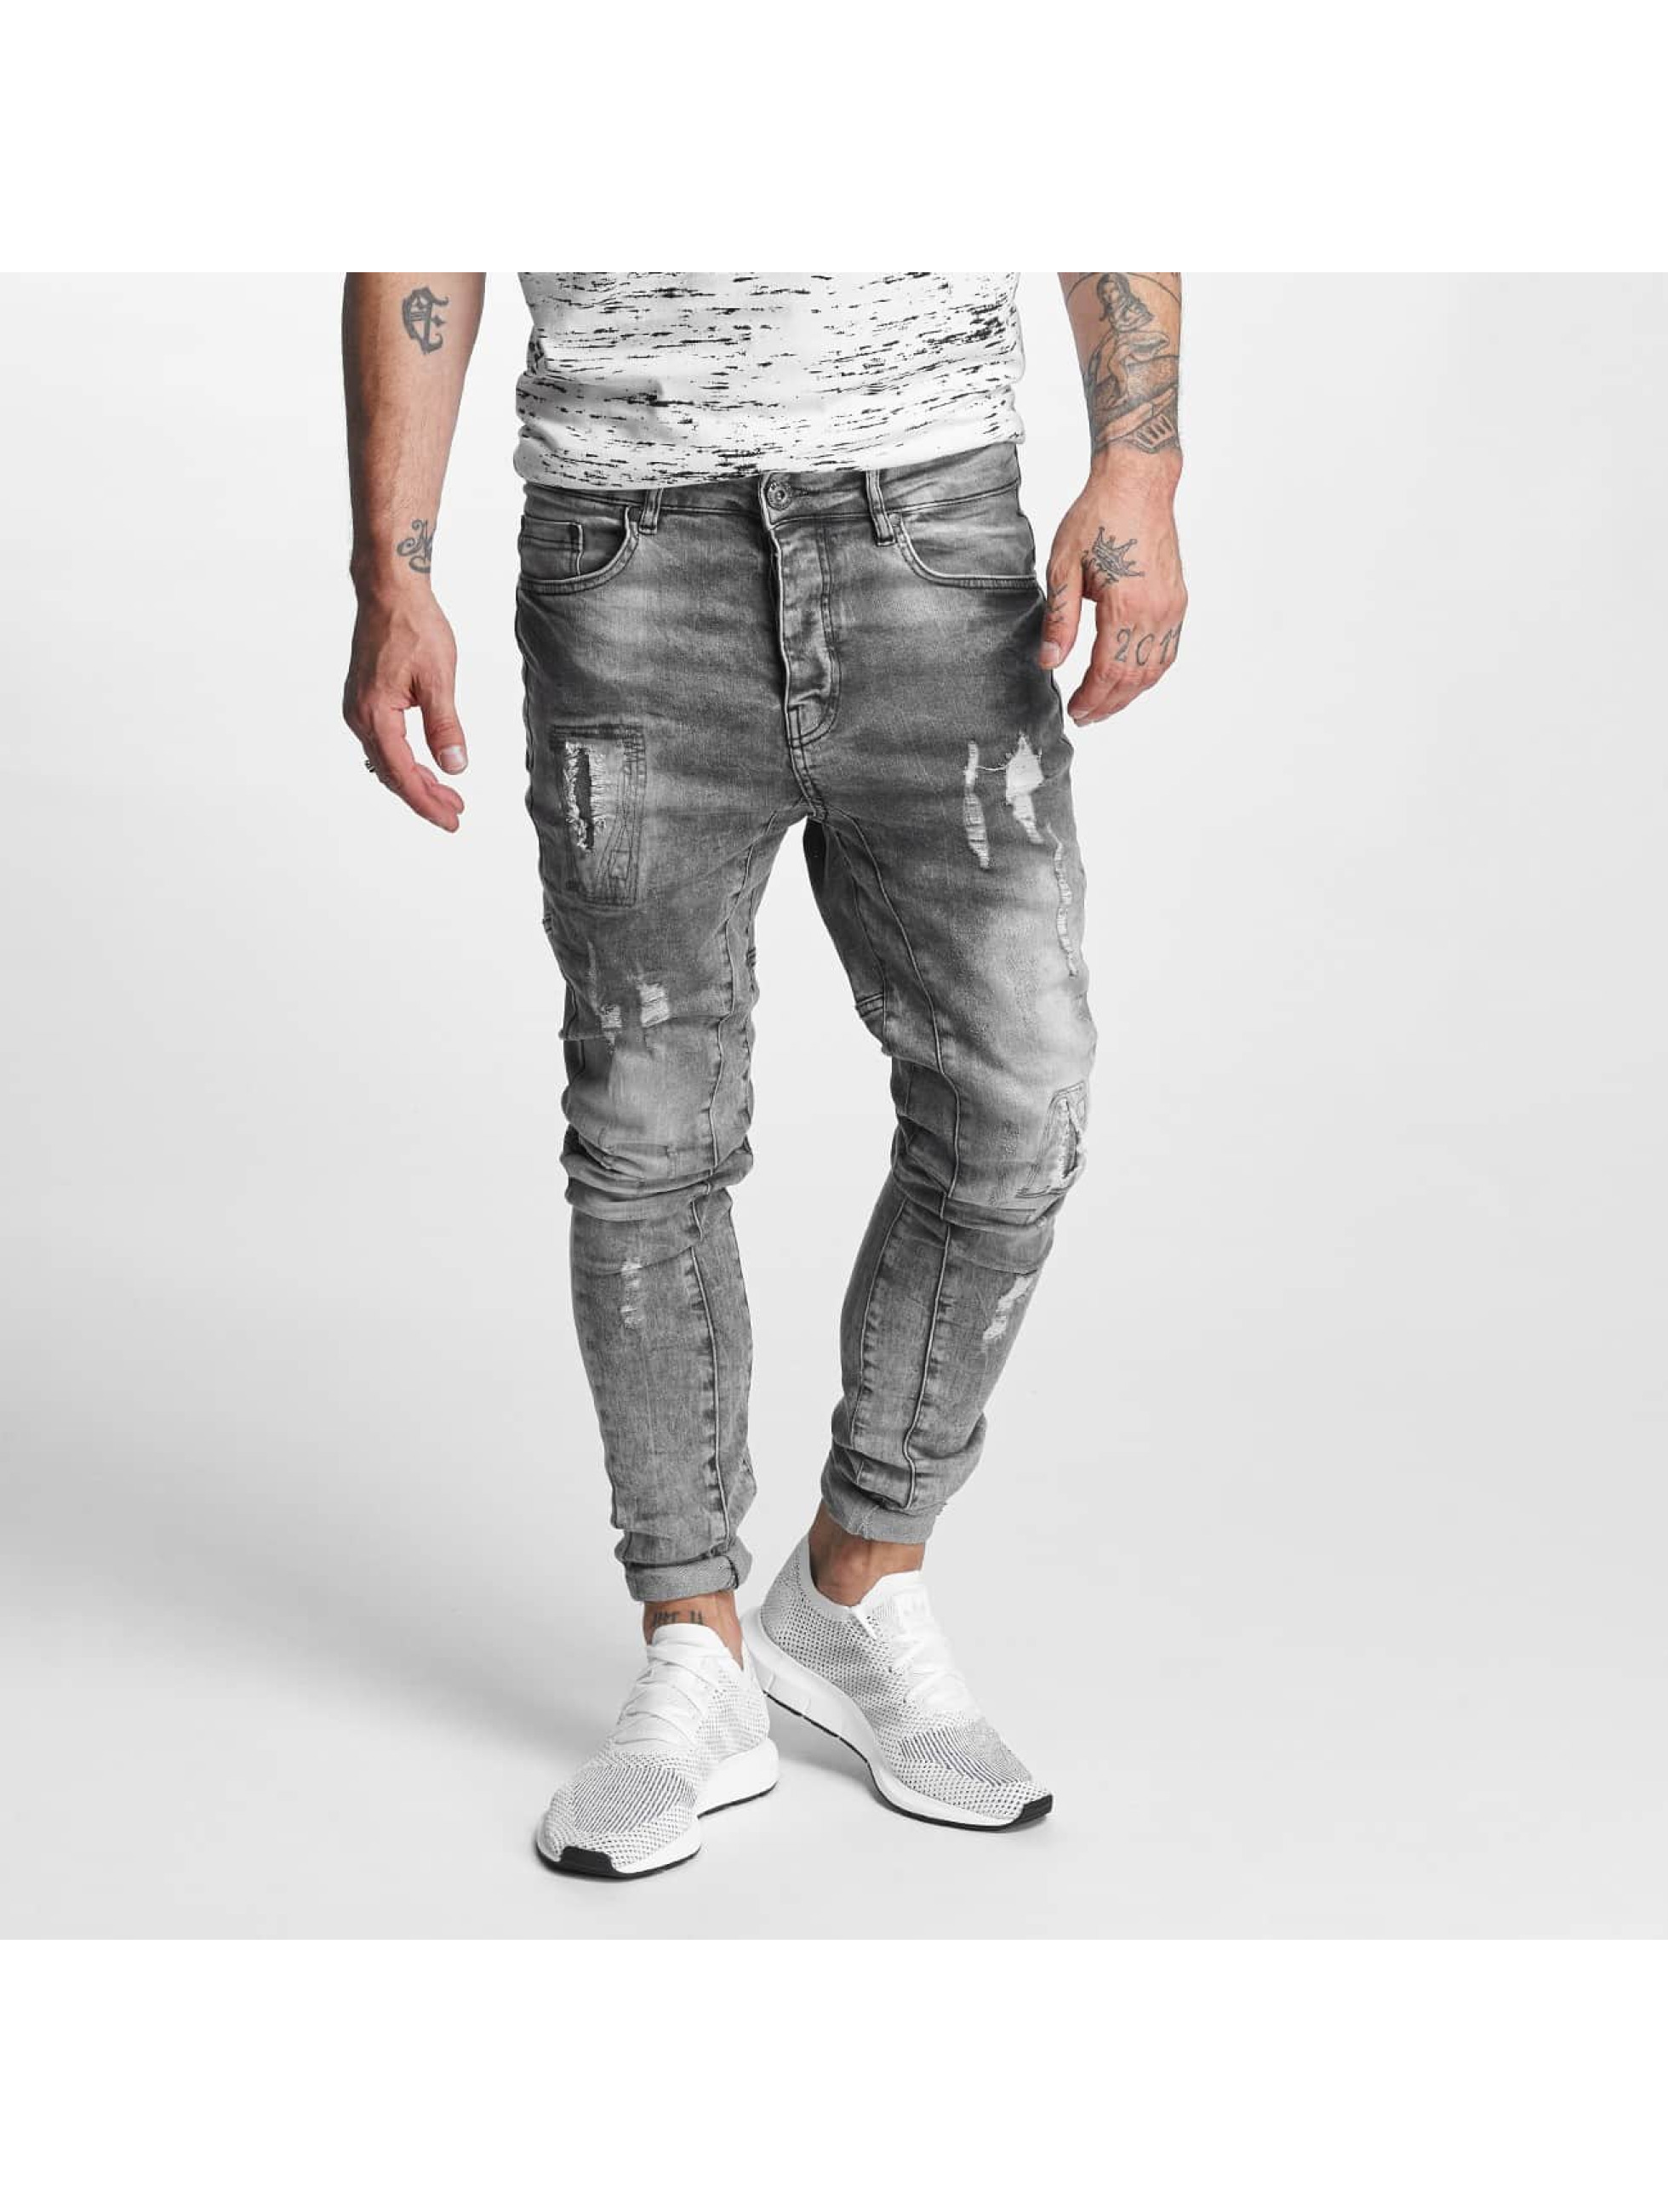 Antifit Chase 5 Pocket Denim in grau